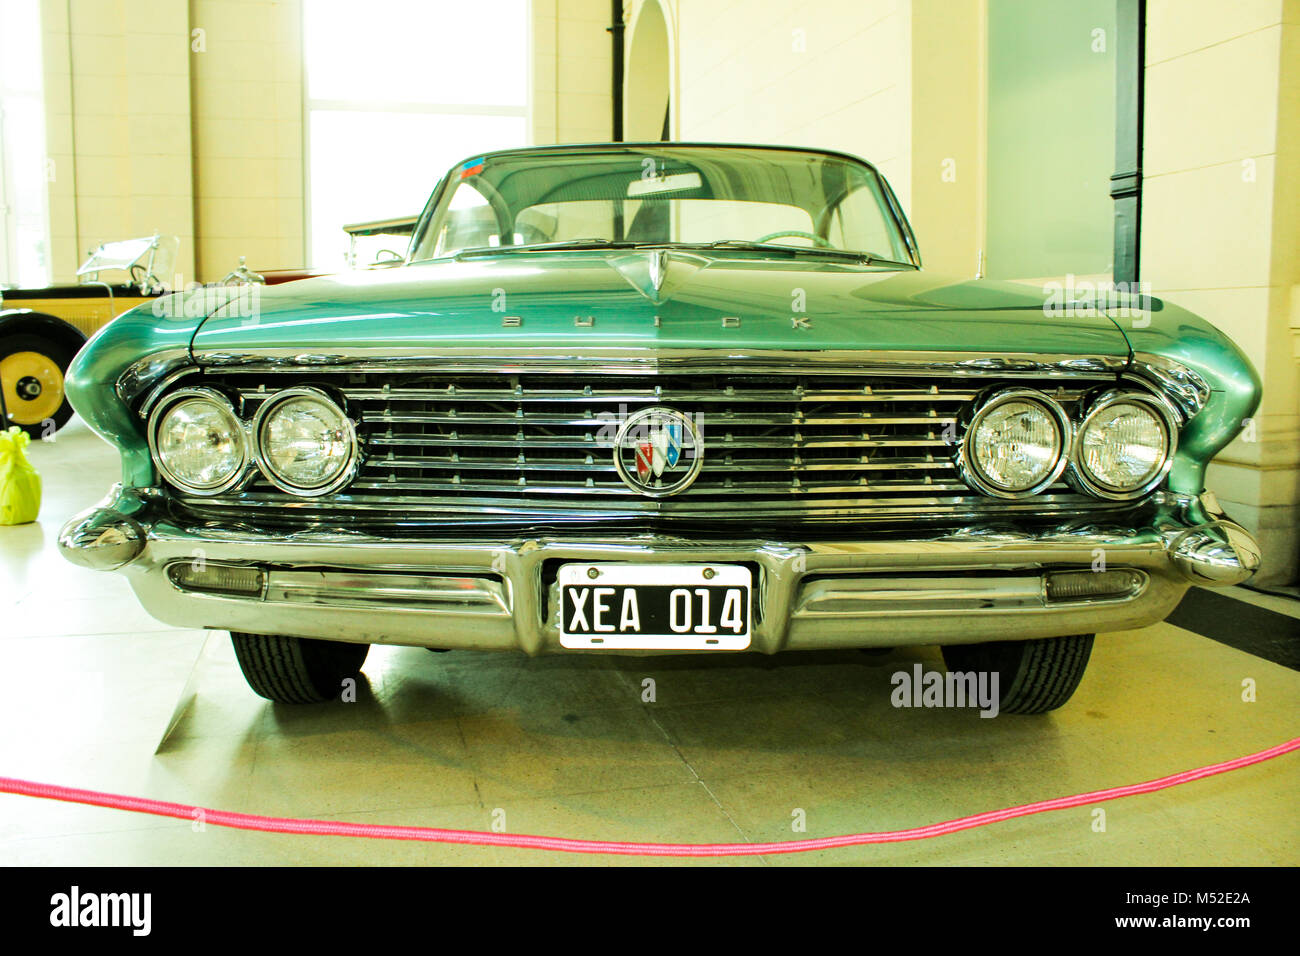 hight resolution of buick lesabre 1961 v8 stock image